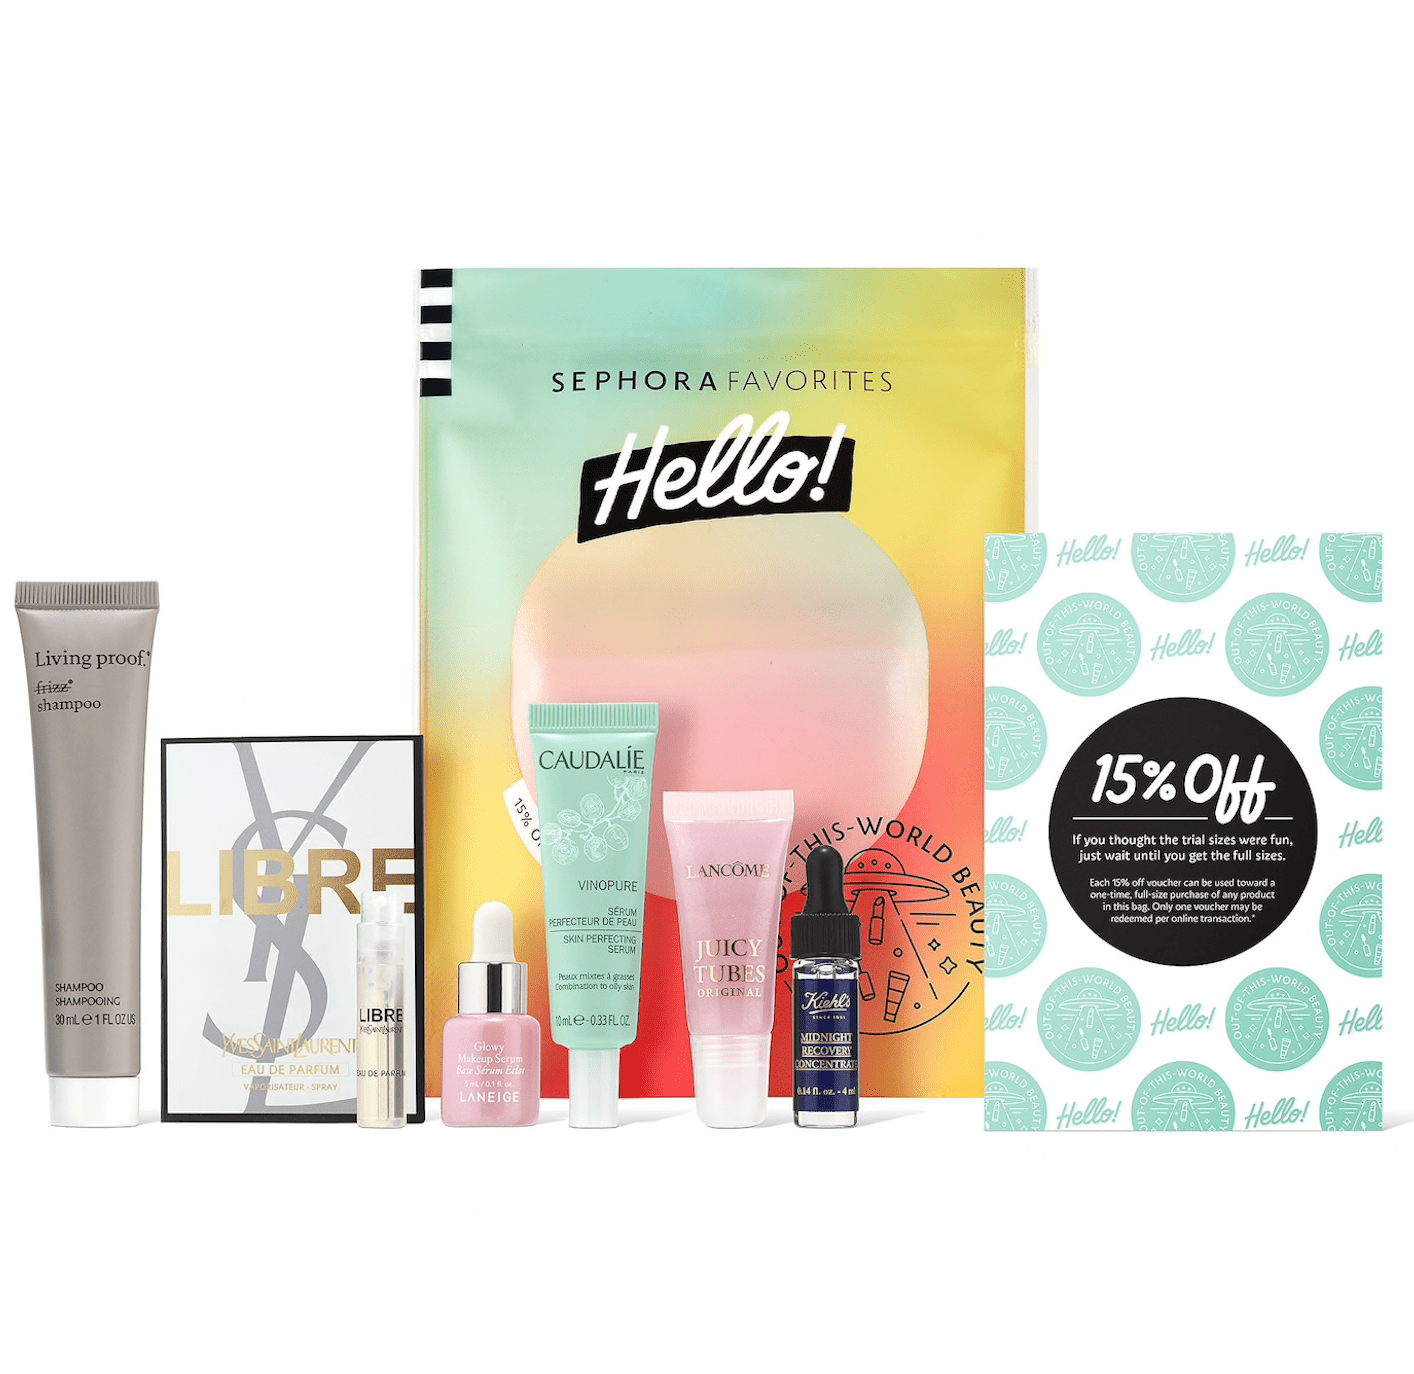 New Sephora Favorites Hello! –Out-Of-This-World Beauty Set – On Sale Now!